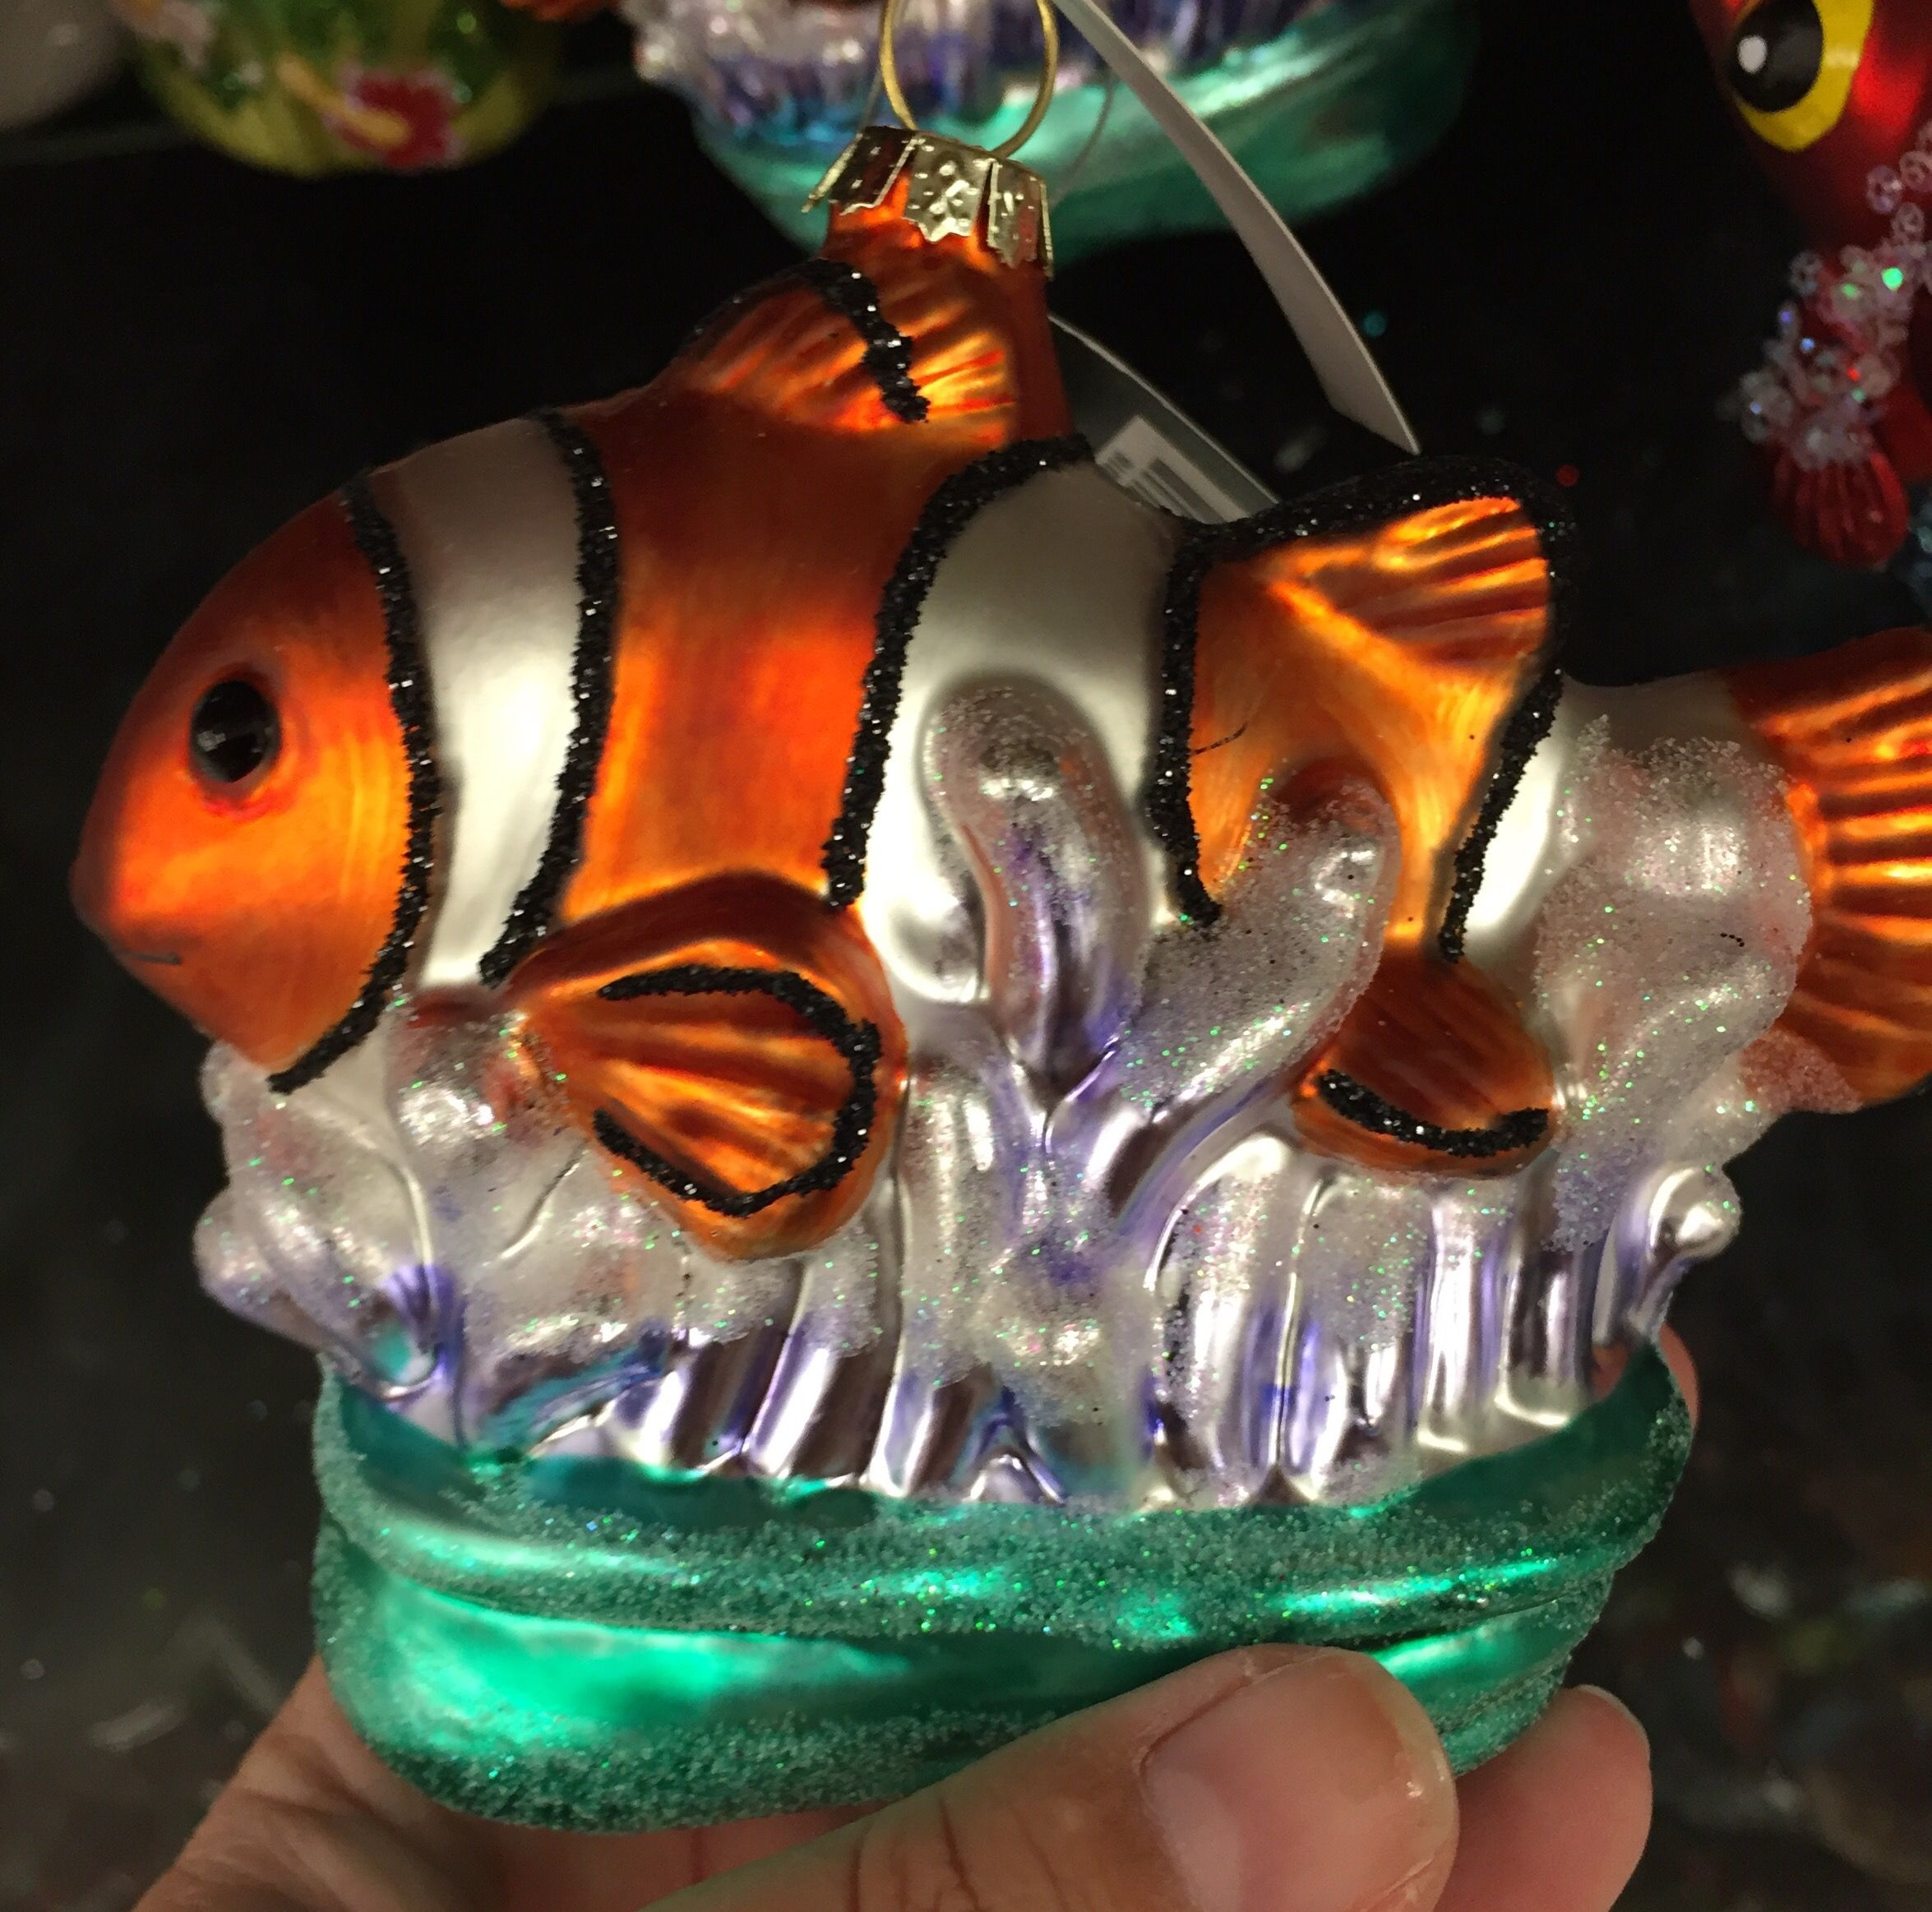 Hobby lobby glass ornaments - Robert Stanley Home Collection Clown Fish Glass Ornament From Hobby Lobby 9 99